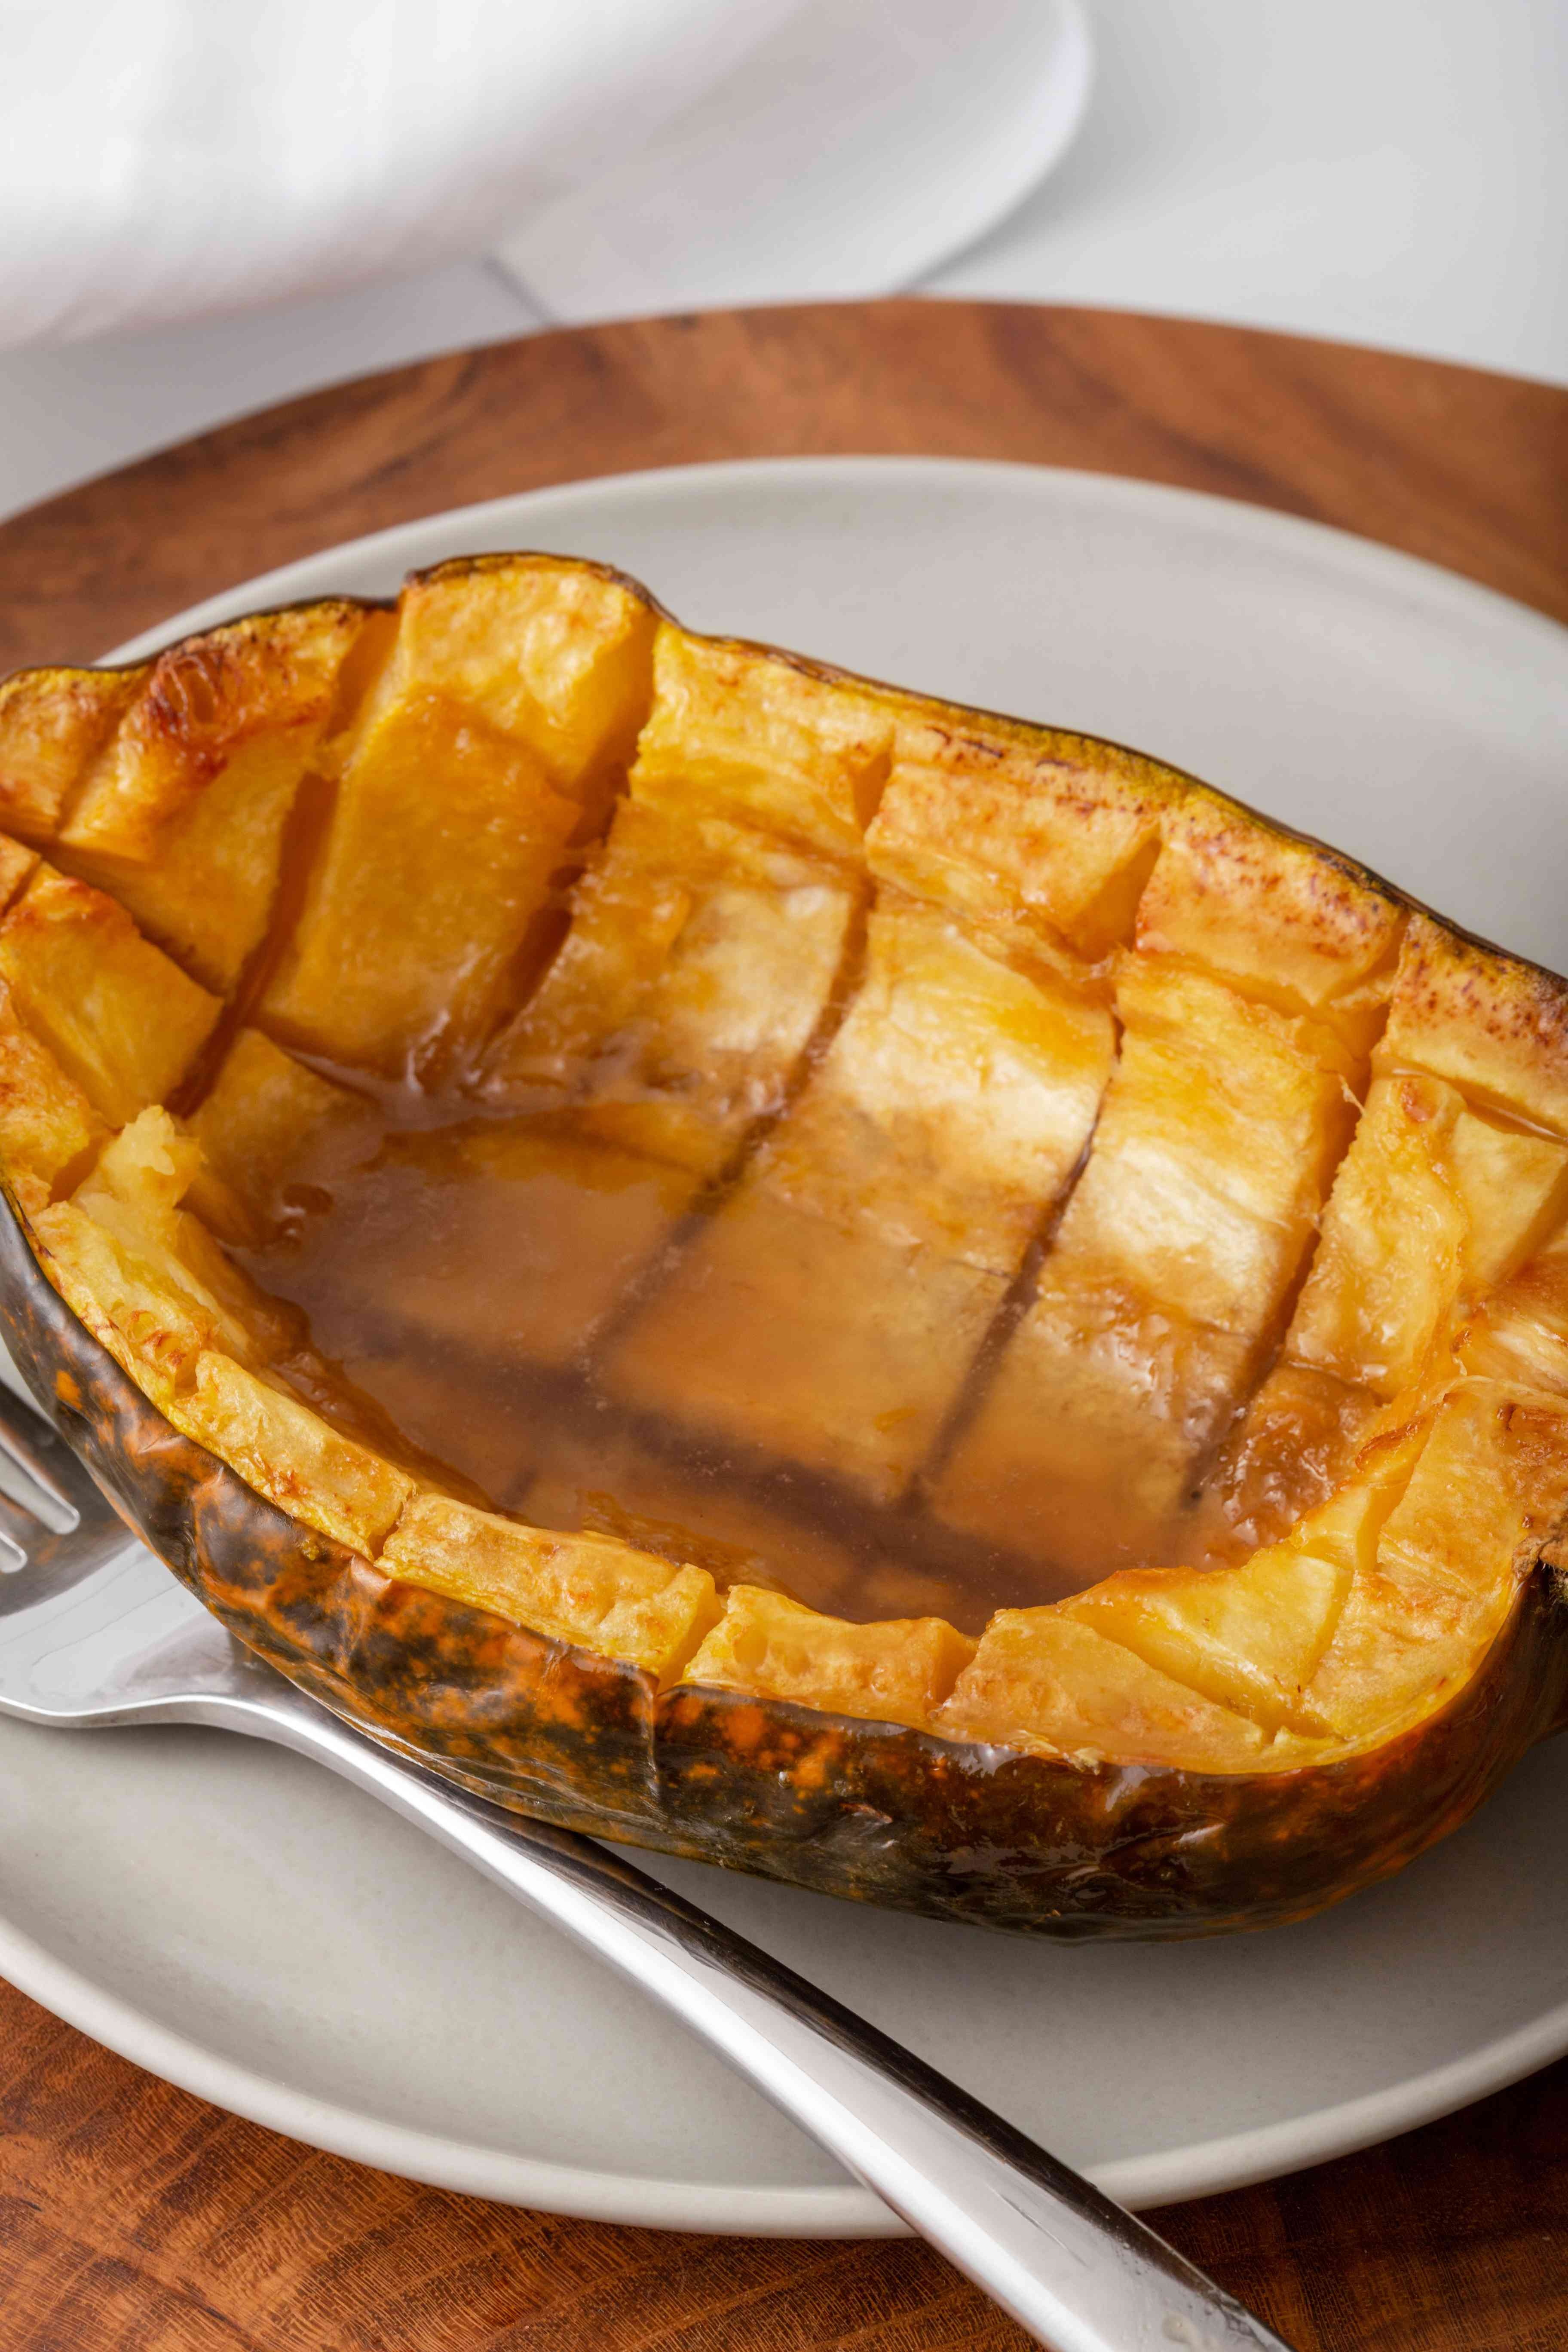 Side view of roasted acorn squash on a plate.